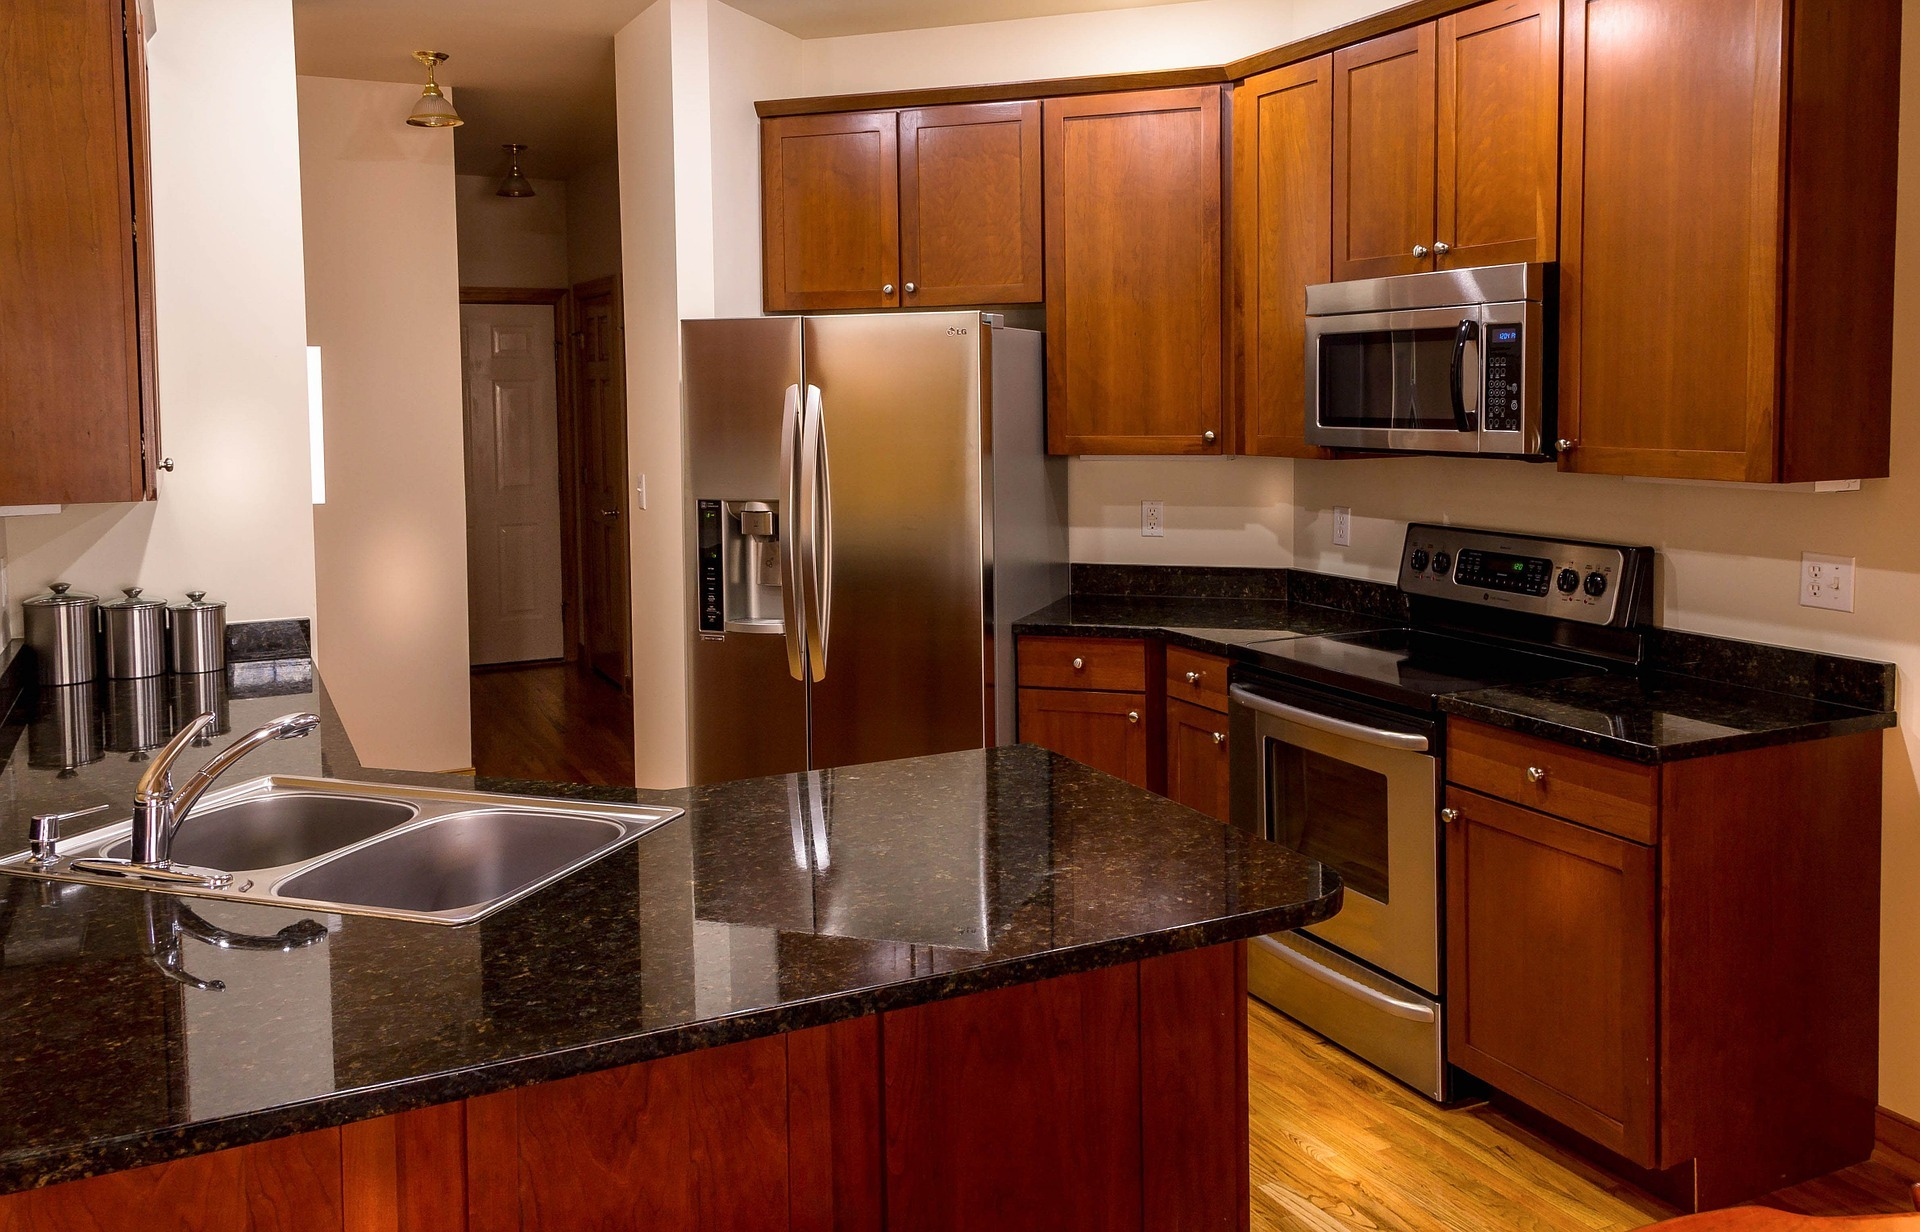 Kitchen Cabinets Yonkers Ave custom kitchen cabinets yonkers - kitchen design